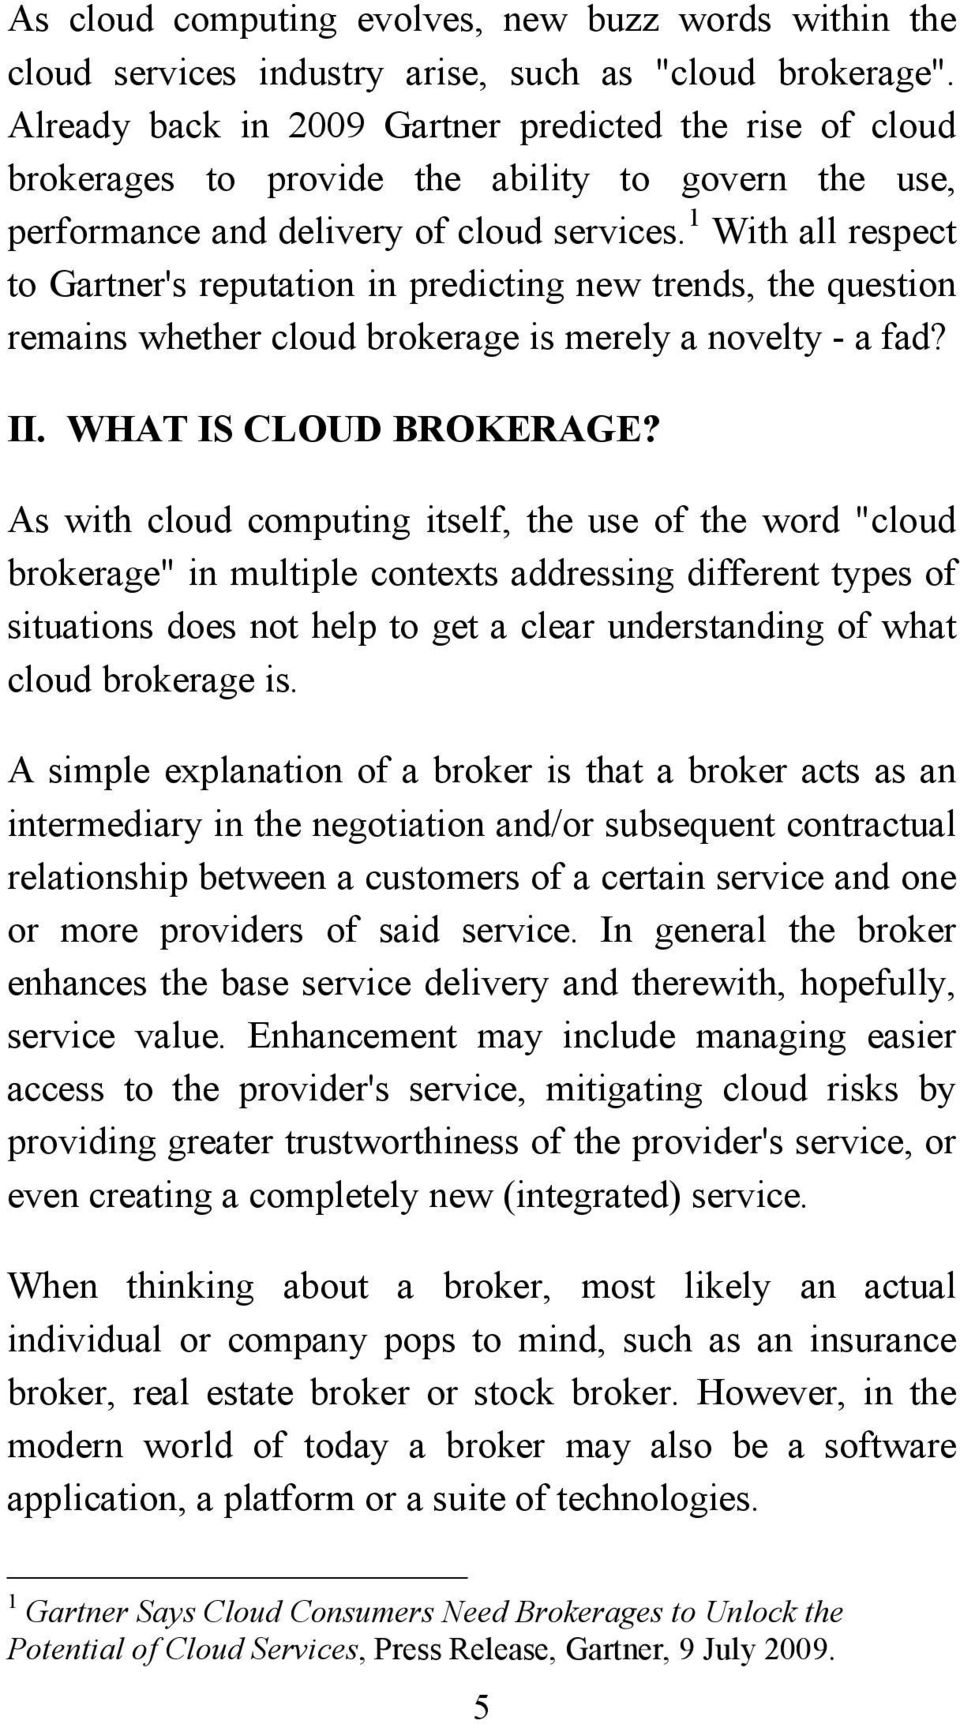 1 With all respect to Gartner's reputation in predicting new trends, the question remains whether cloud brokerage is merely a novelty - a fad? II. WHAT IS CLOUD BROKERAGE?